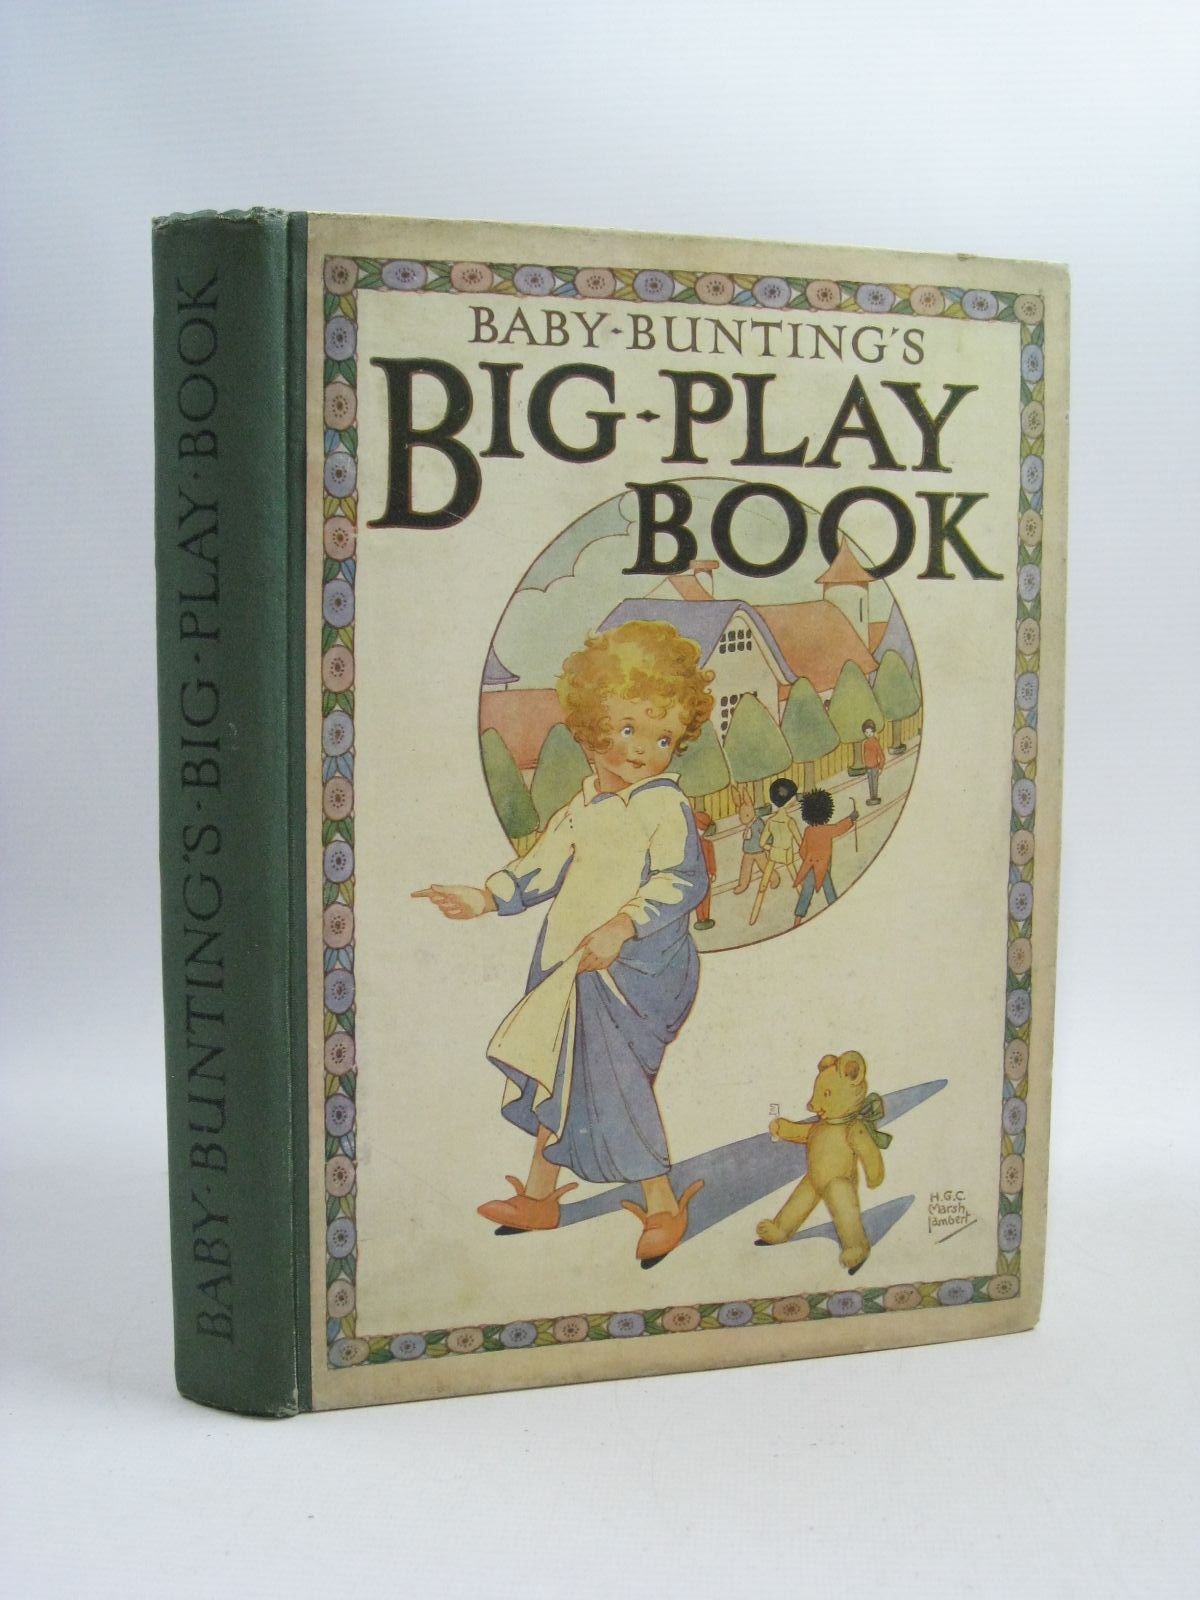 Photo of BABY BUNTING'S BIG PLAY BOOK written by Lambert, H.G.C. Marsh illustrated by Lambert, H.G.C. Marsh published by Ward, Lock & Co. Limited (STOCK CODE: 1314878)  for sale by Stella & Rose's Books